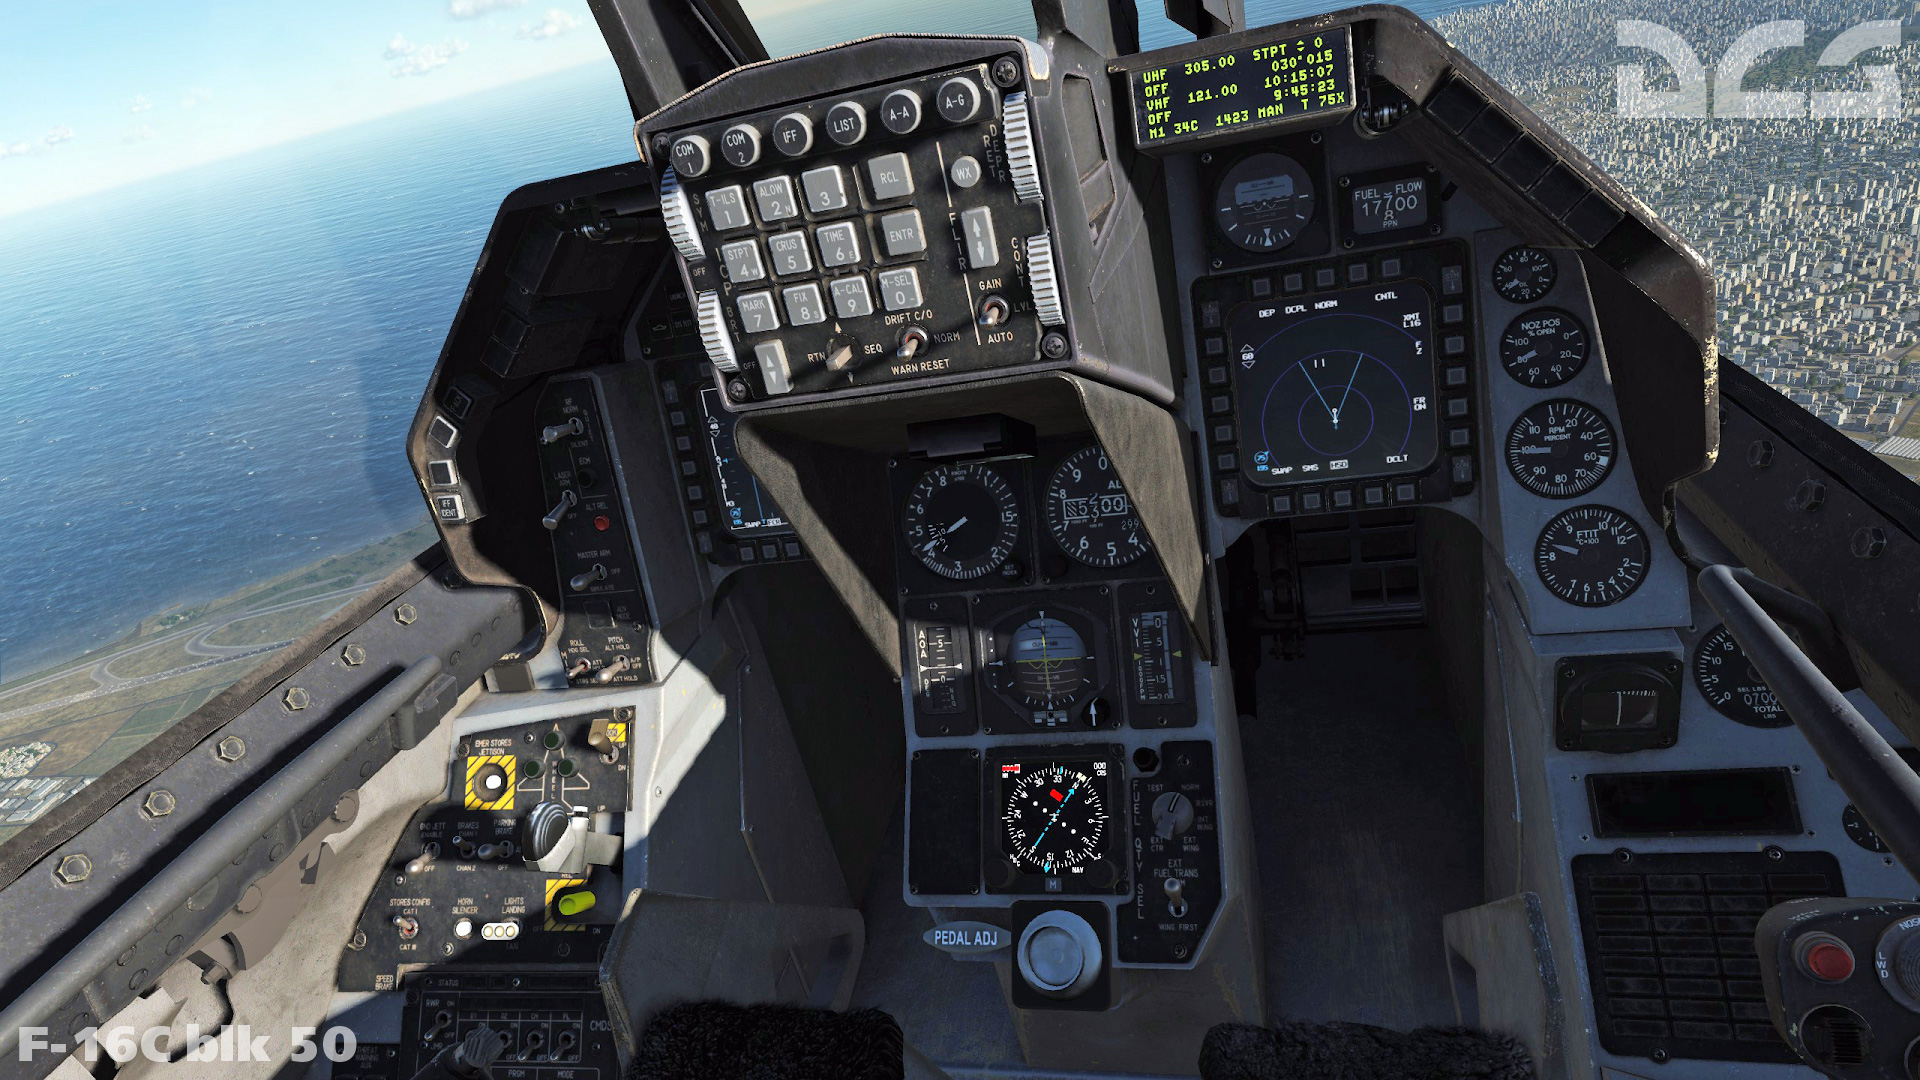 F-16C - Louder cockpit Switches Mod & louder gun in cockpit V1.0 - NEW INSTALATION 2.5.6.45317 or later